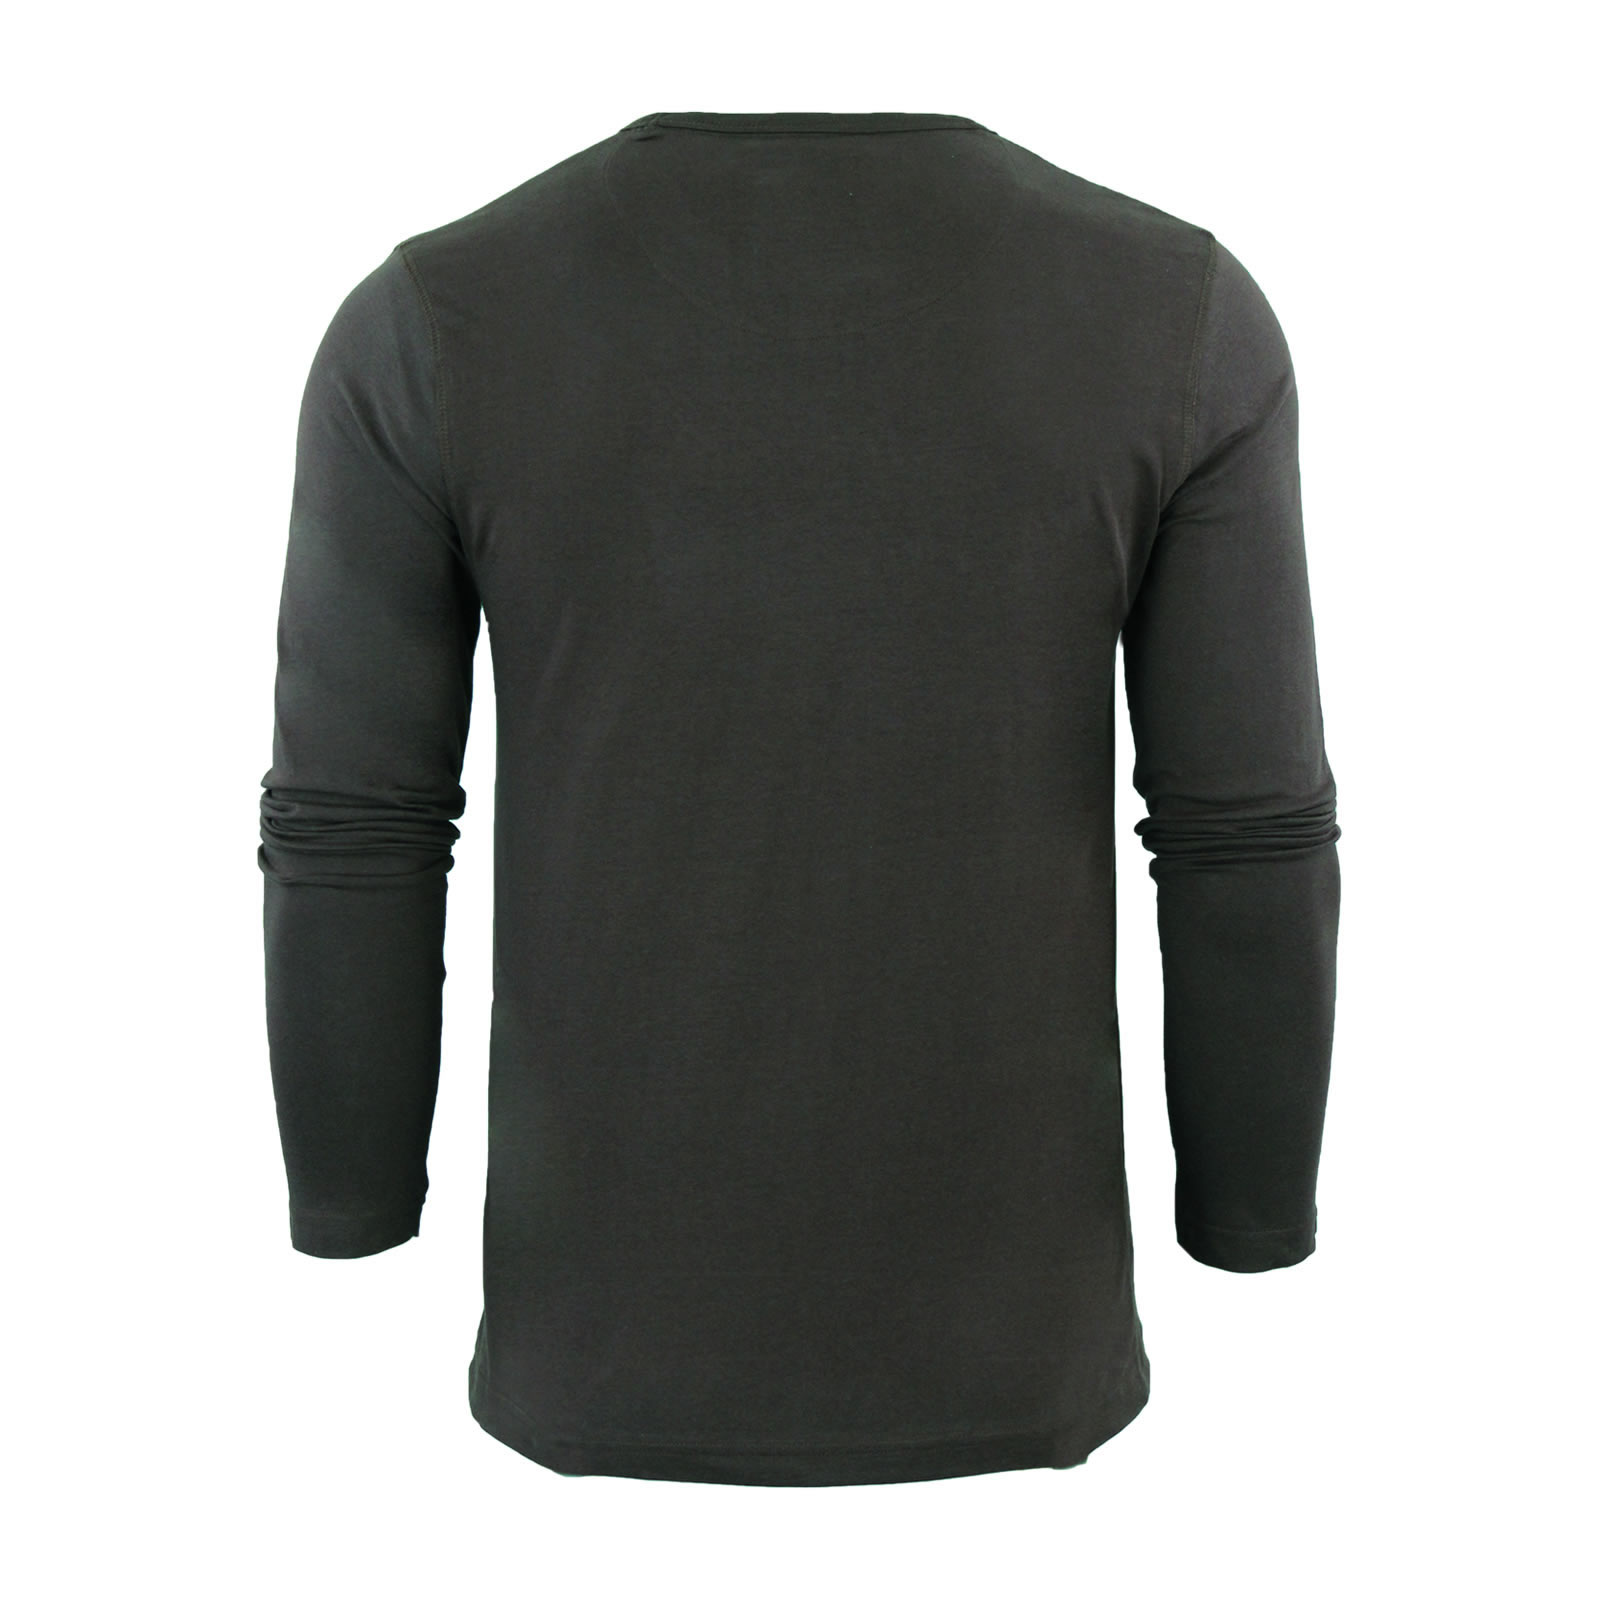 Mens-T-Shirt-by-Brave-Soul-Prague-Cotton-Long-Sleeved-Crew-Neck-Casual-Top thumbnail 9